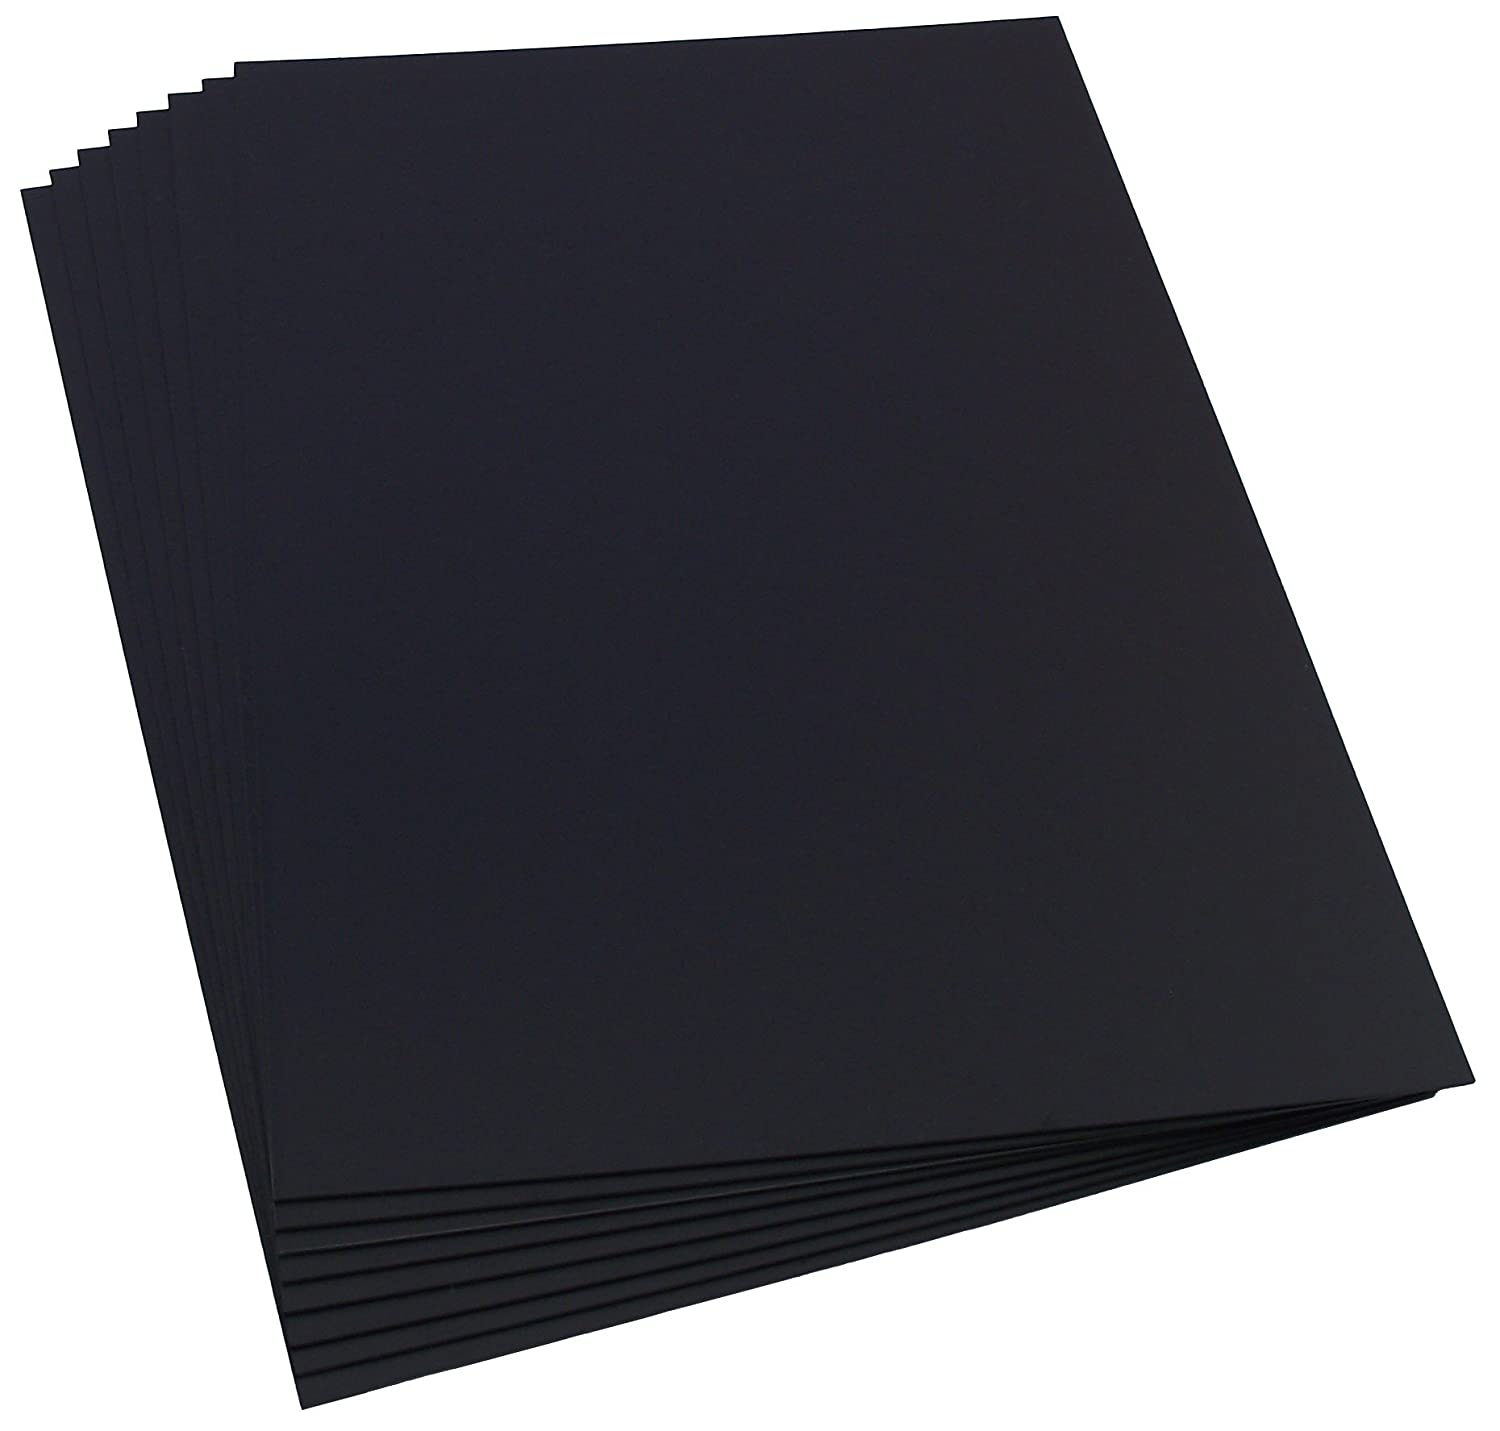 Plasticard 8 Sheets of 0.5mm Matt Black Styrene, Size A4+ 220mm x 325mm Station Road Baseboards